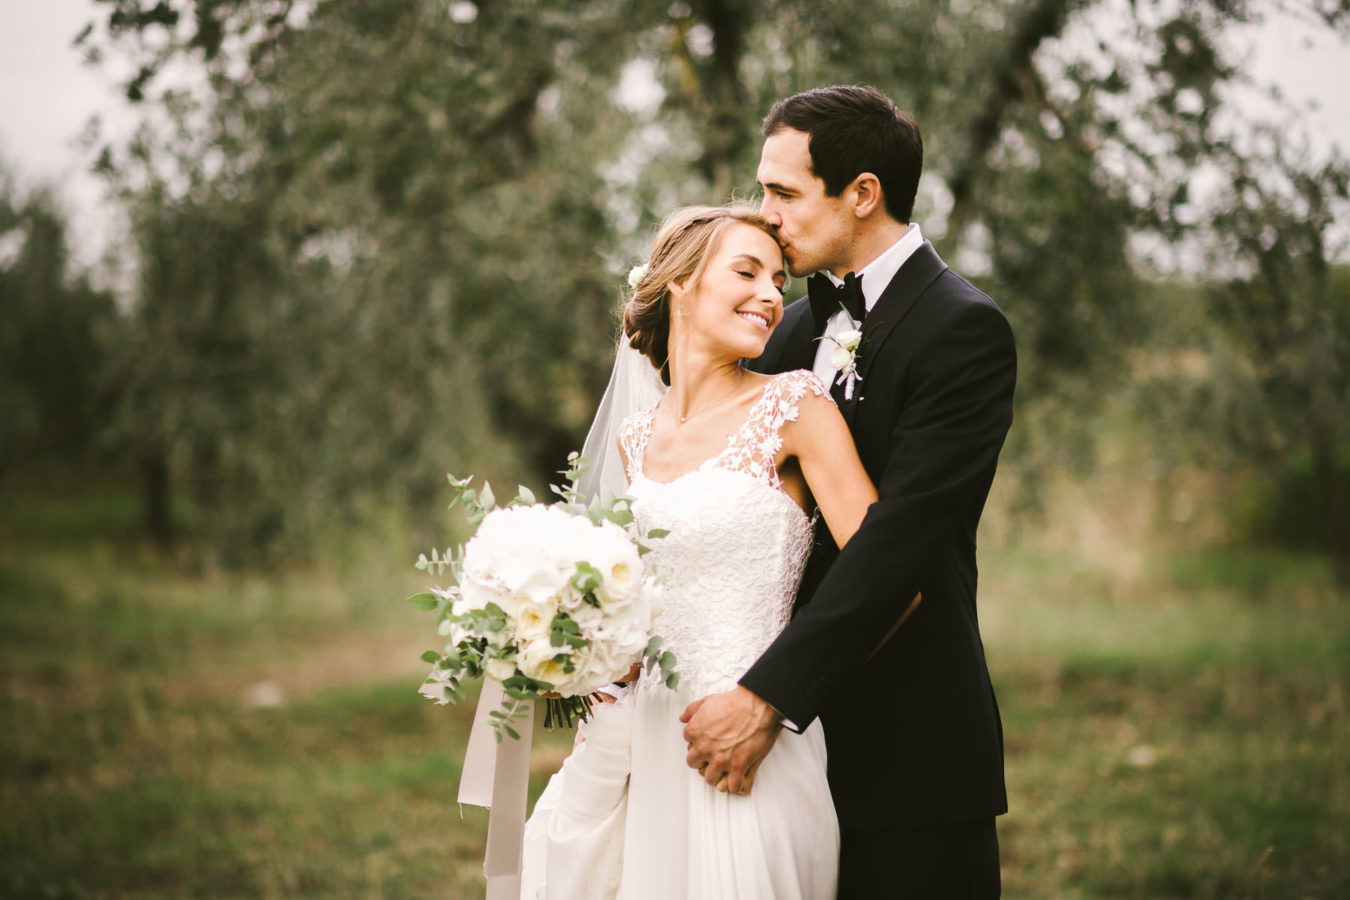 Italian Wedding Photographer in Tuscany based Florence Gabriele Fani